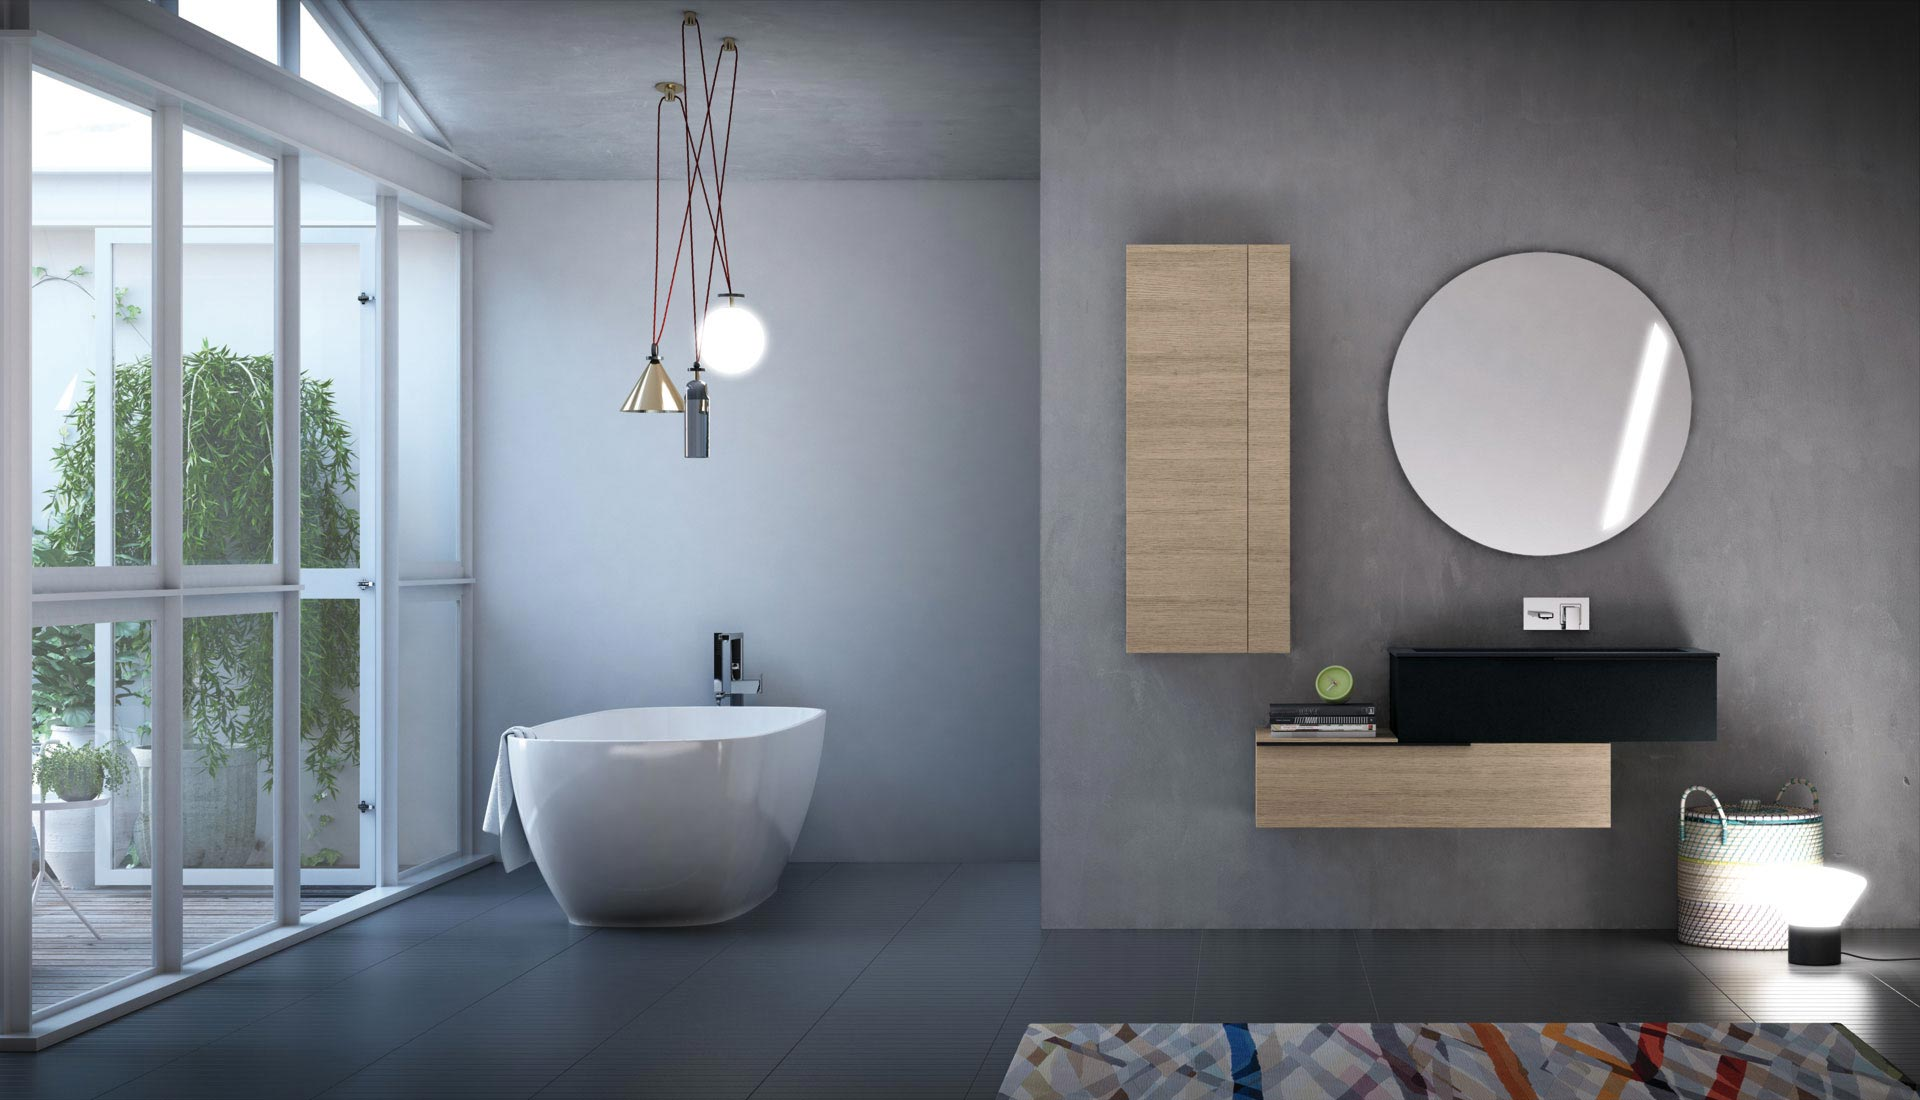 Bathroom furniture with handle - Puntotre Arredobagno